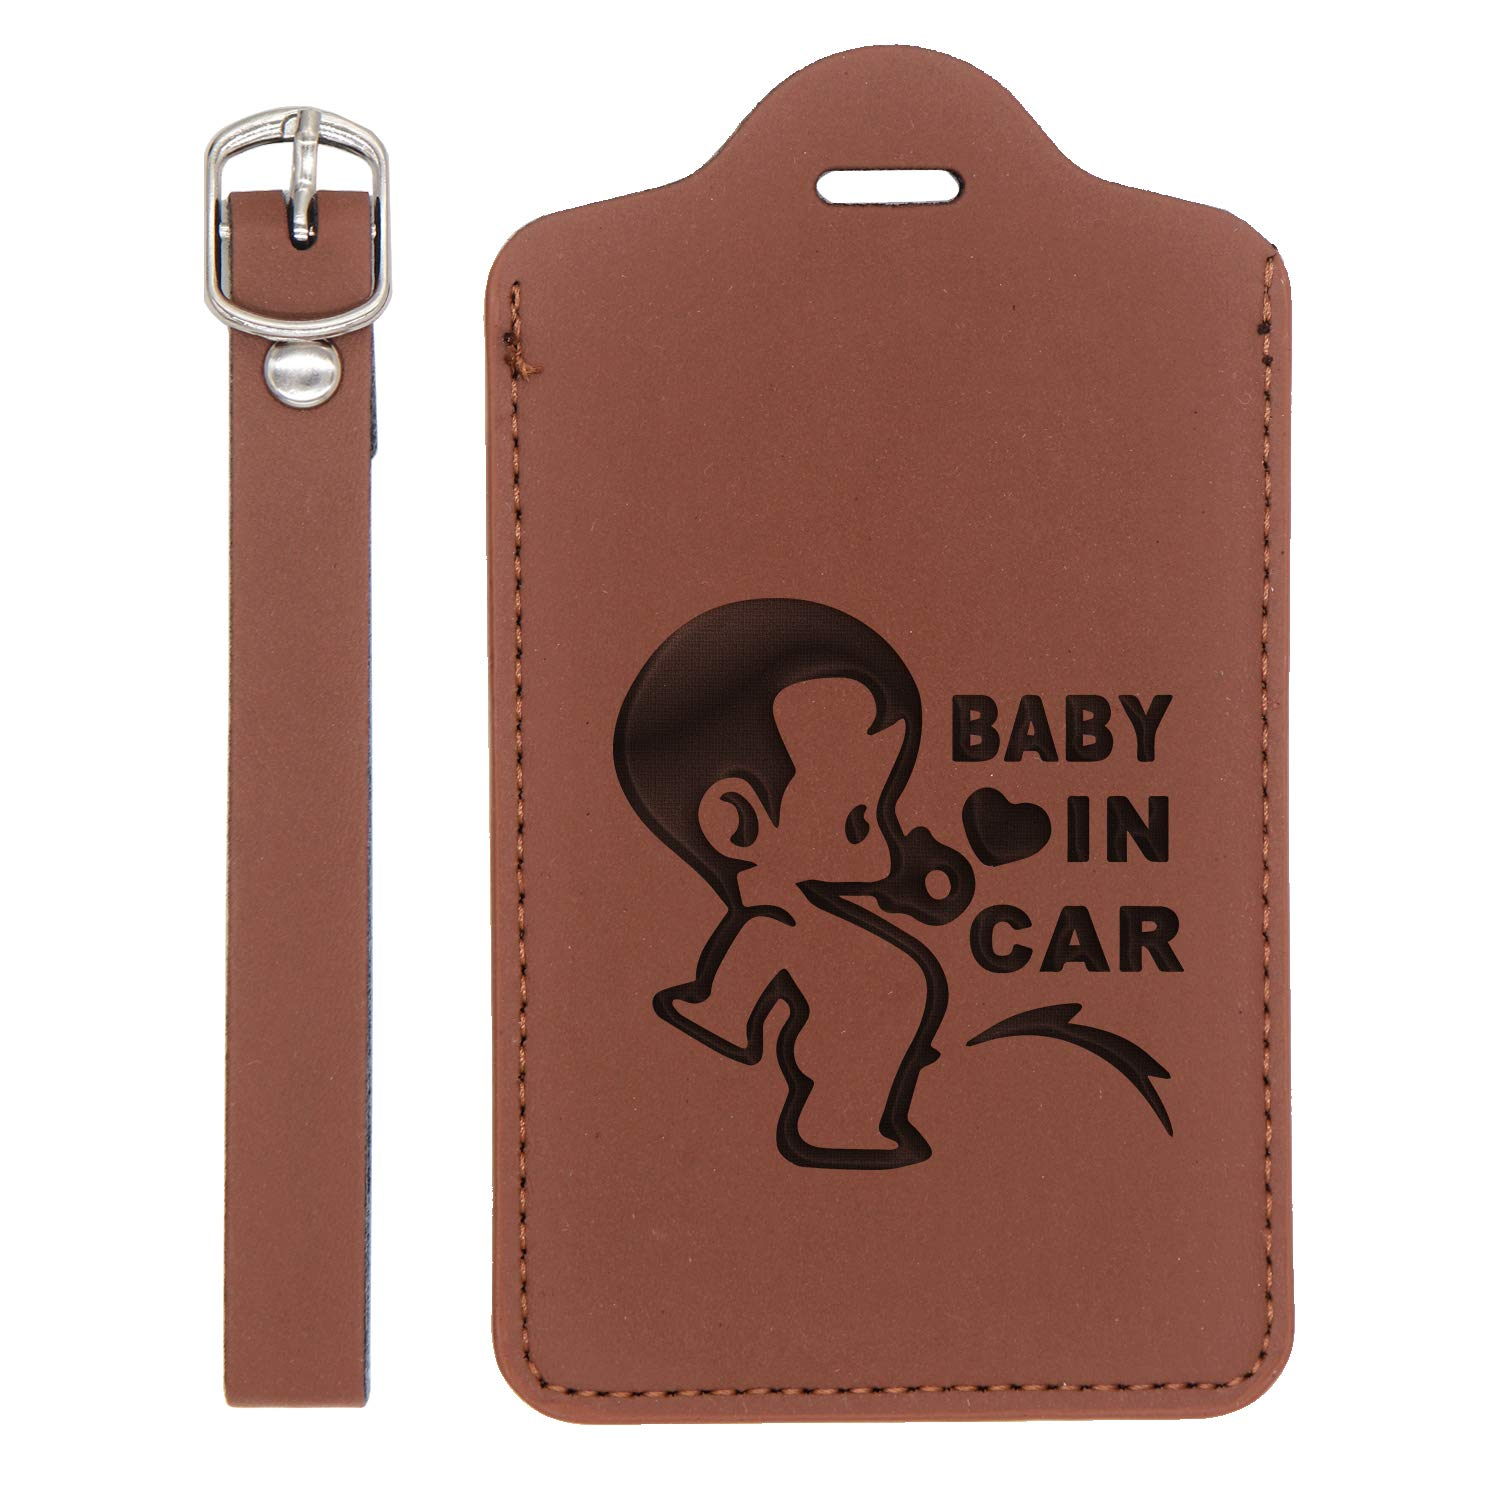 - United States Standard Handcrafted By Mastercraftsmen For Any Type Of Luggage Baby In Car Engraved Synthetic Pu Leather Luggage Tag London Tan - Set Of 2